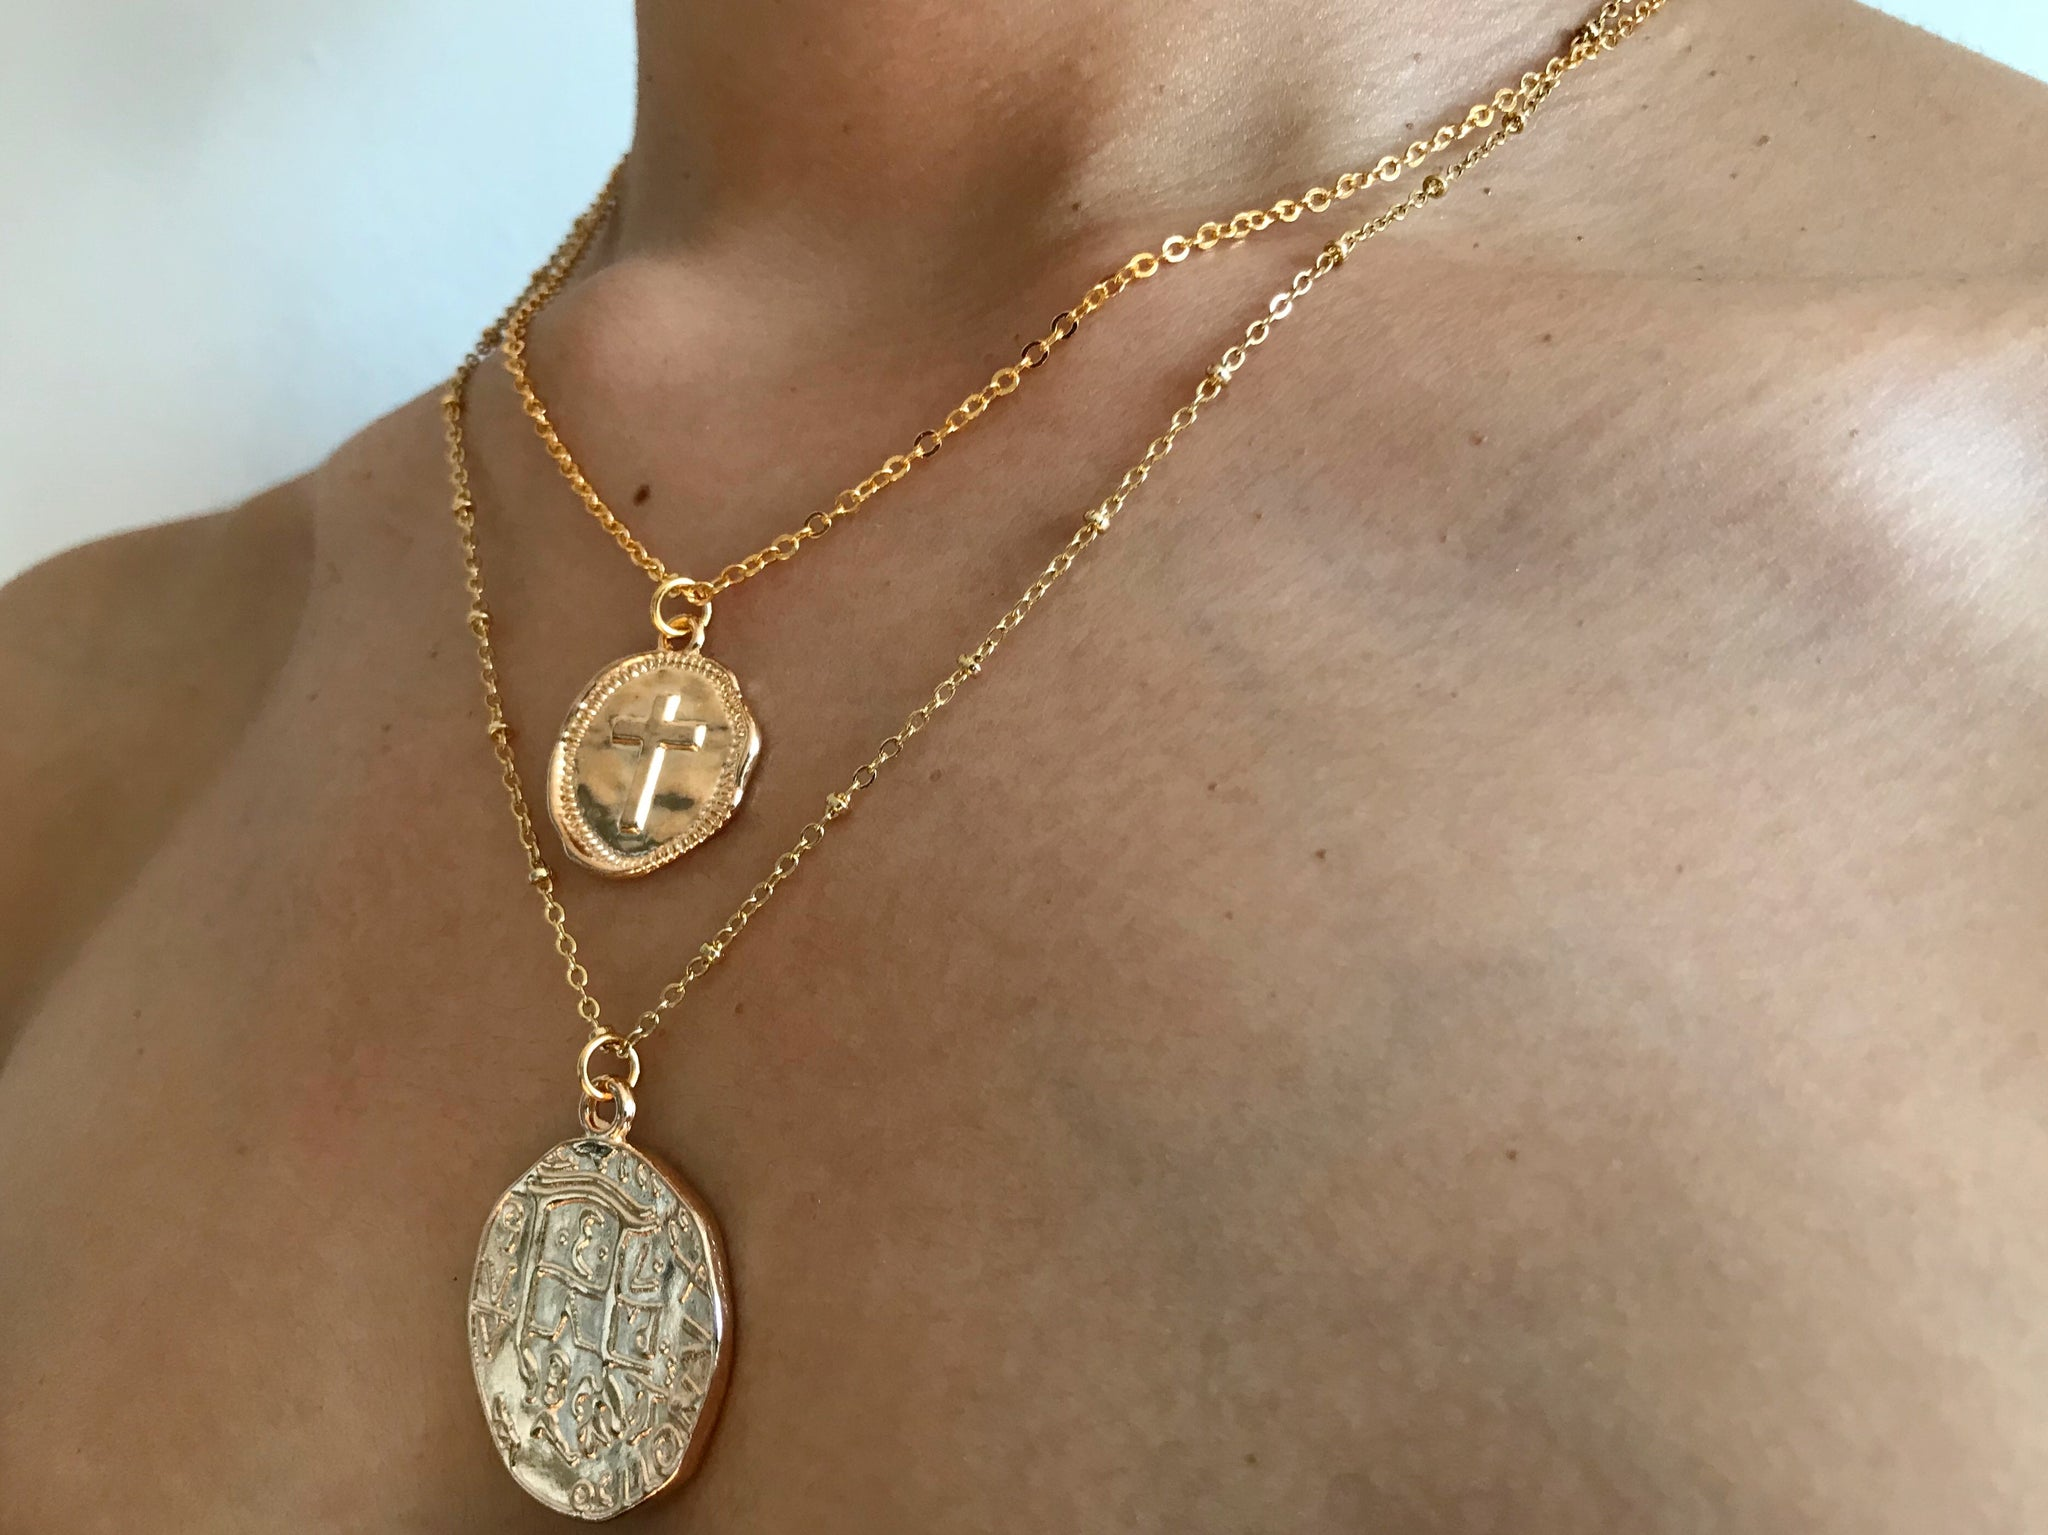 Cross coin necklace, collar de cruz, collar de oro, gold necklace, gold coin necklace, cross jewelry, cross charm